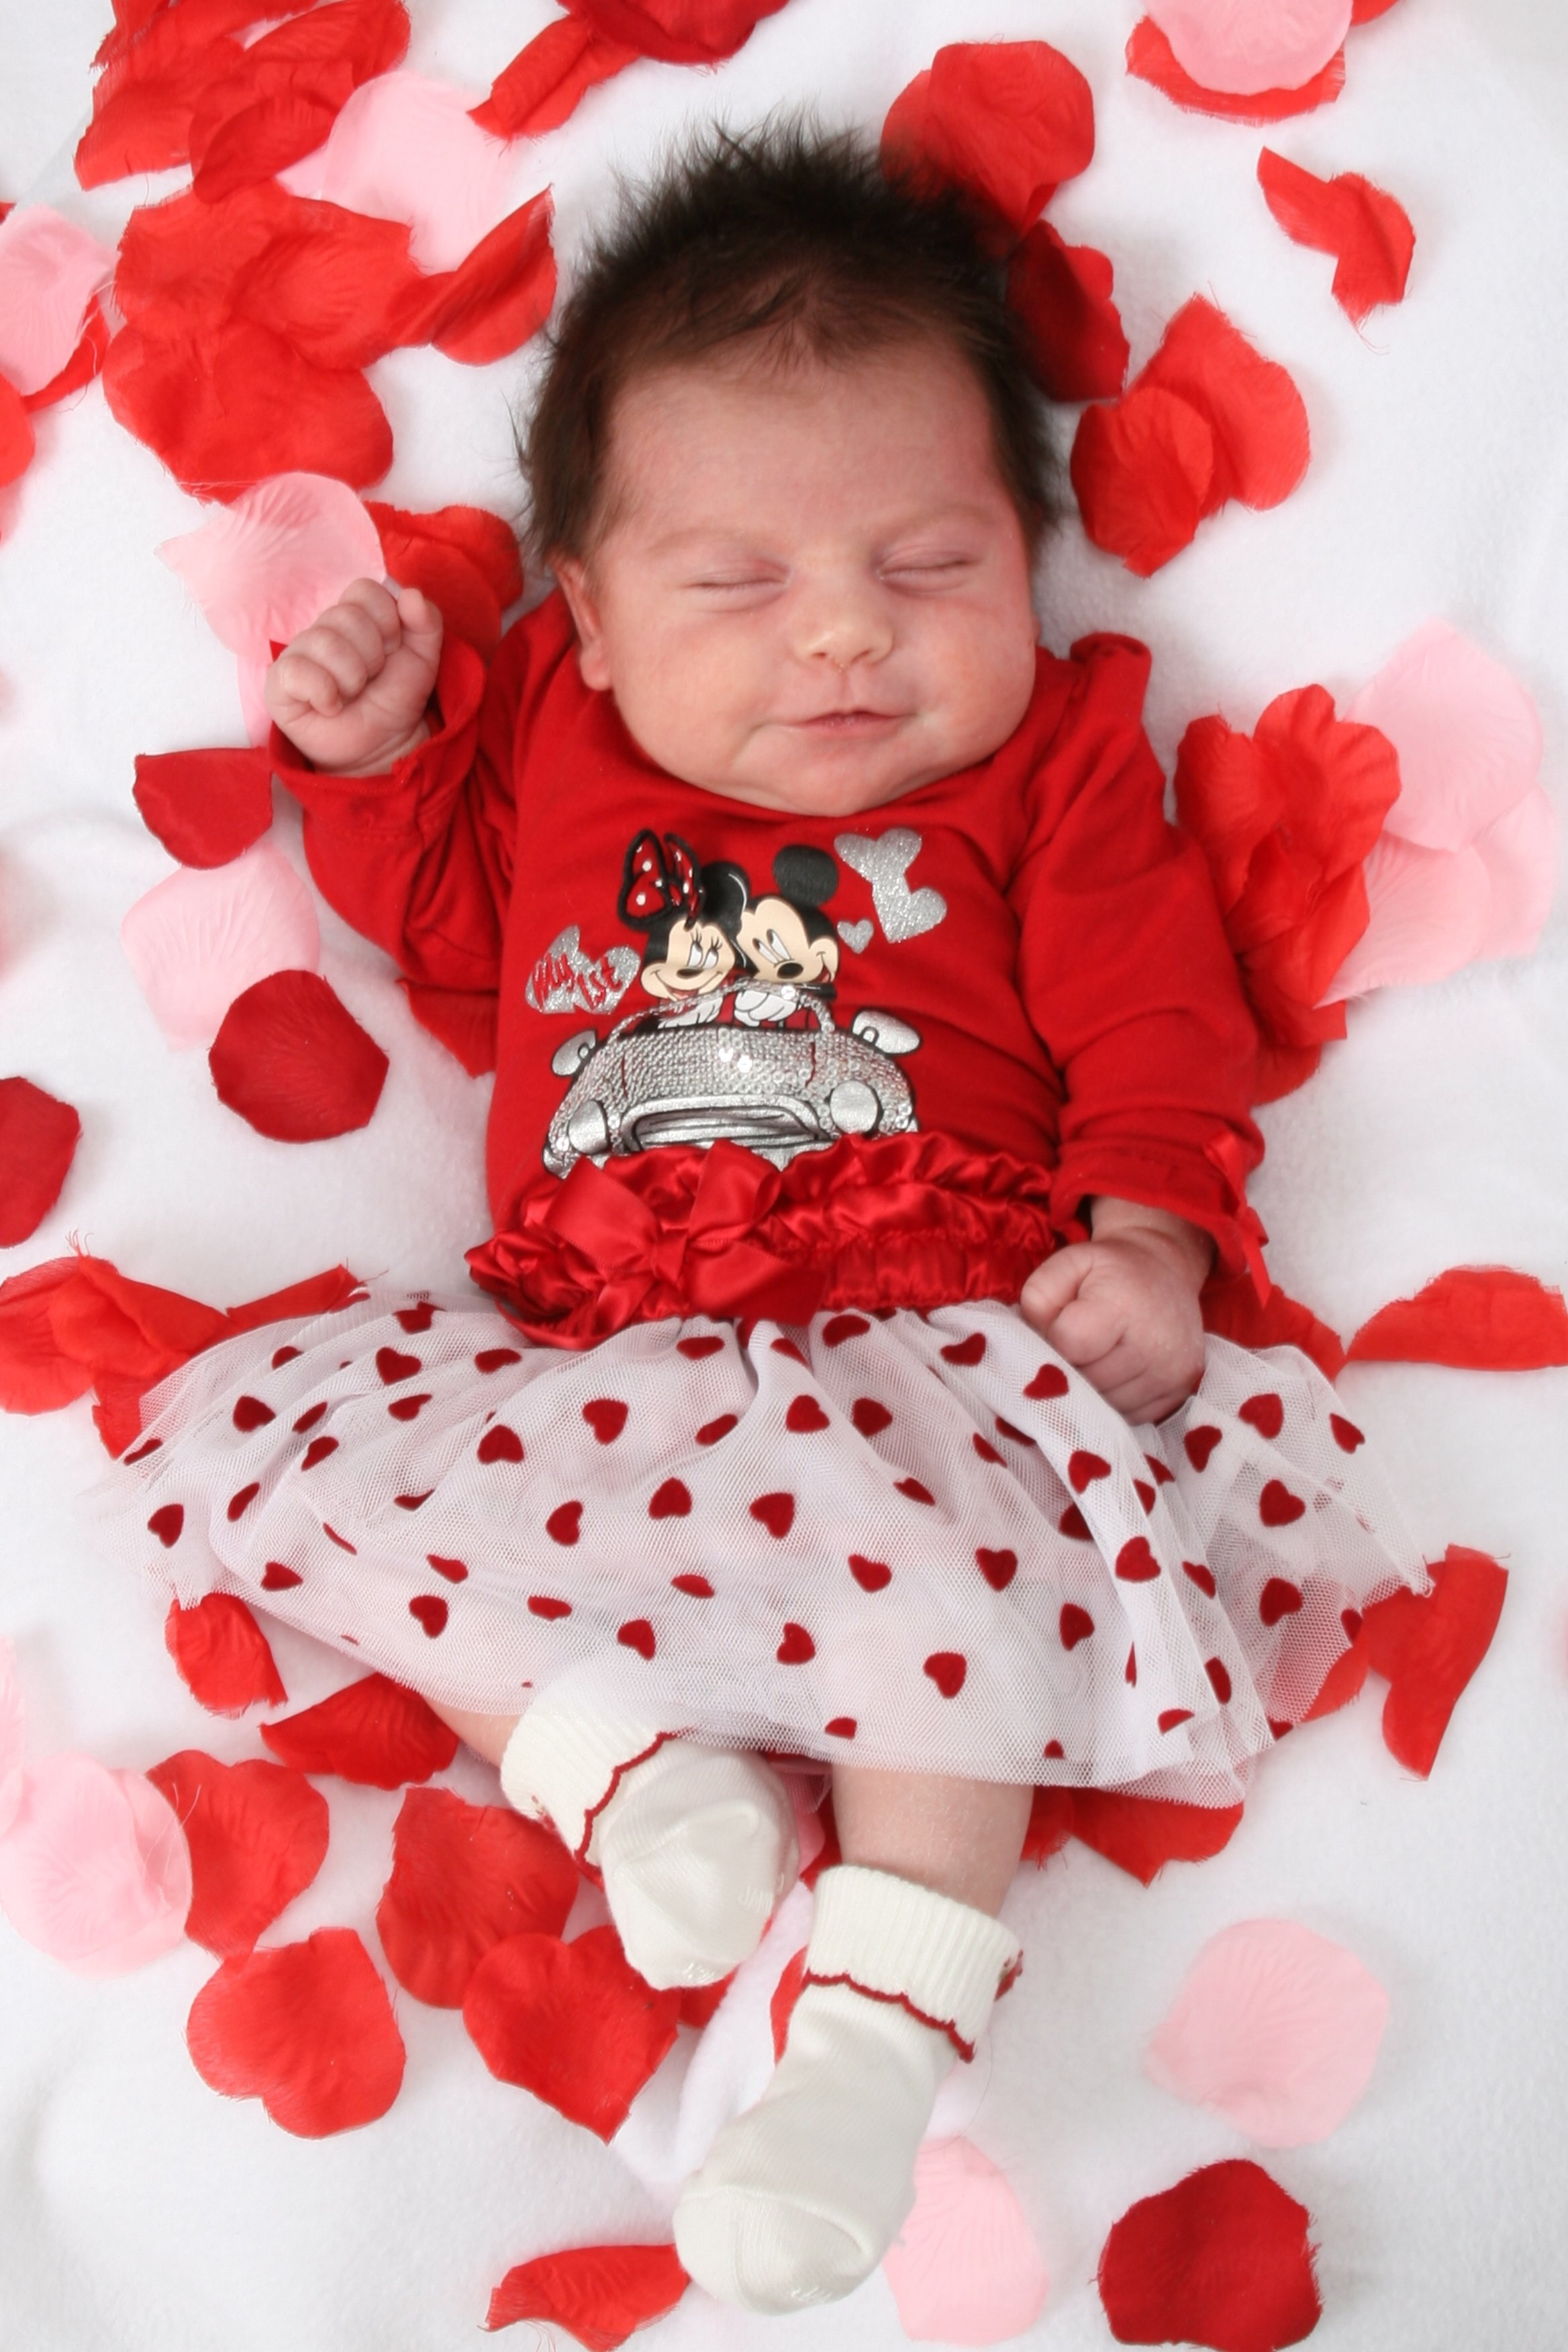 10 Fantastic Valentine Day Baby Photo Ideas happy valentines day the gaming angel baby tech and games 2020